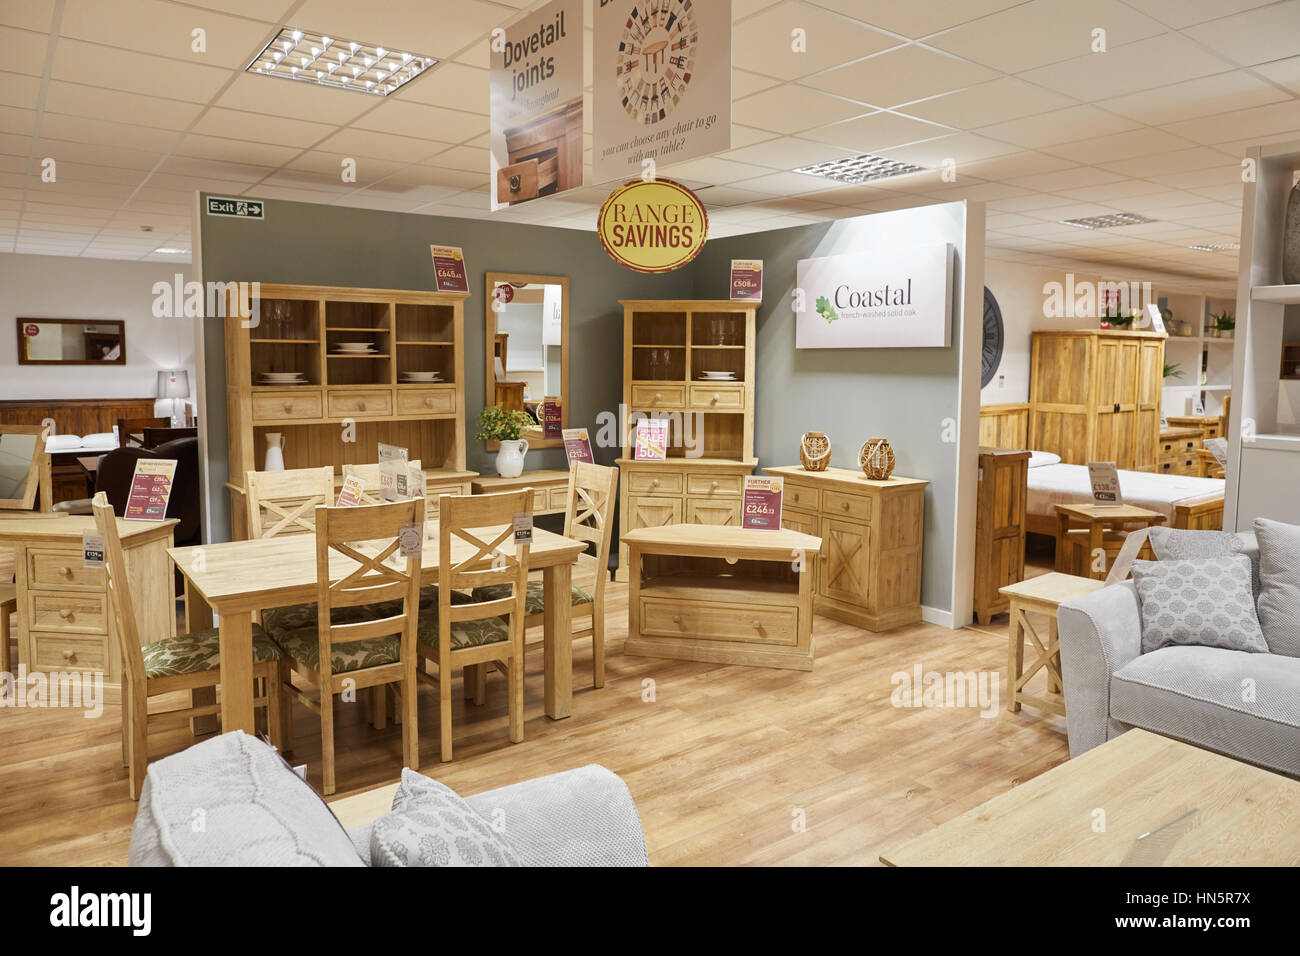 The Interior Of Macclesfield Oak Furniture Land A Privately Owned